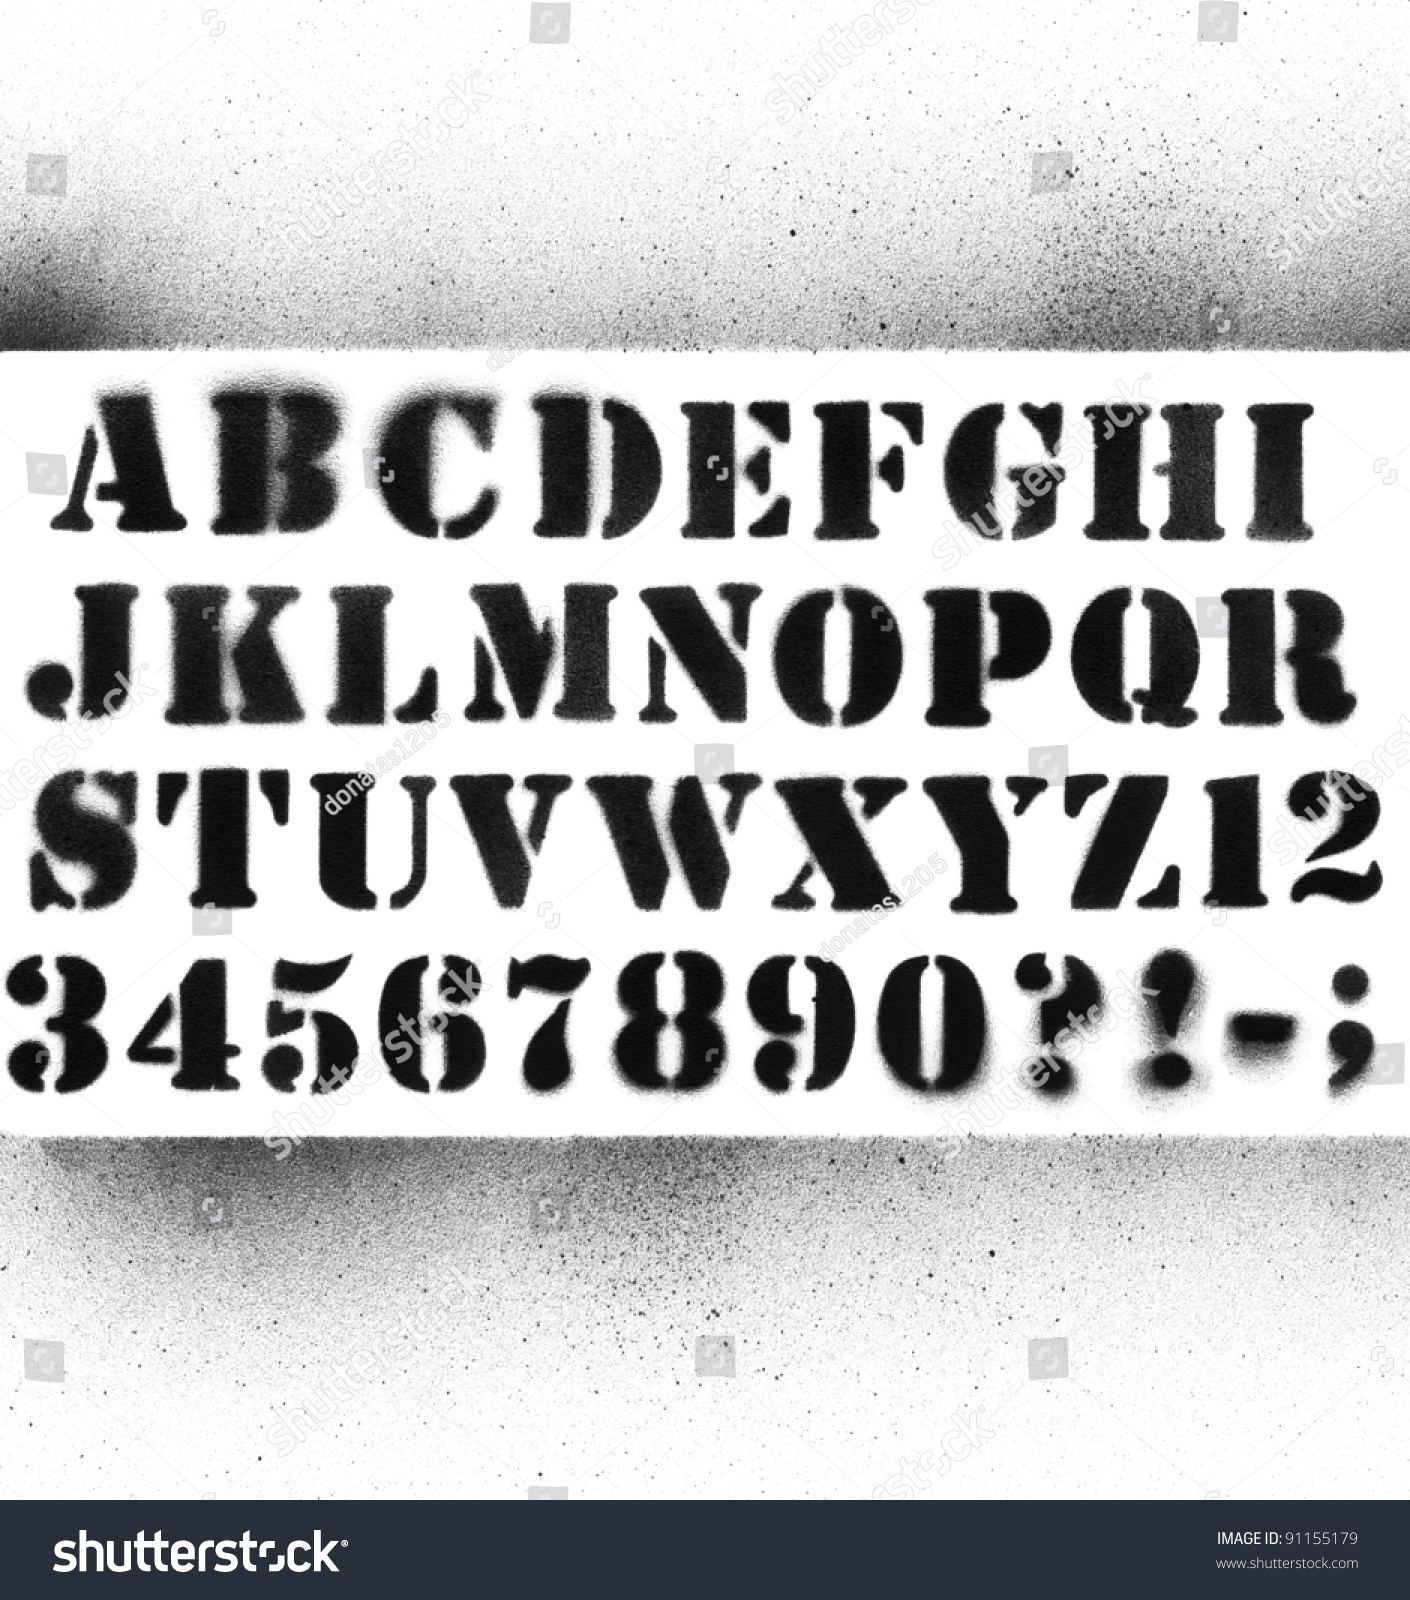 Splatted graffiti alphabet with numbers